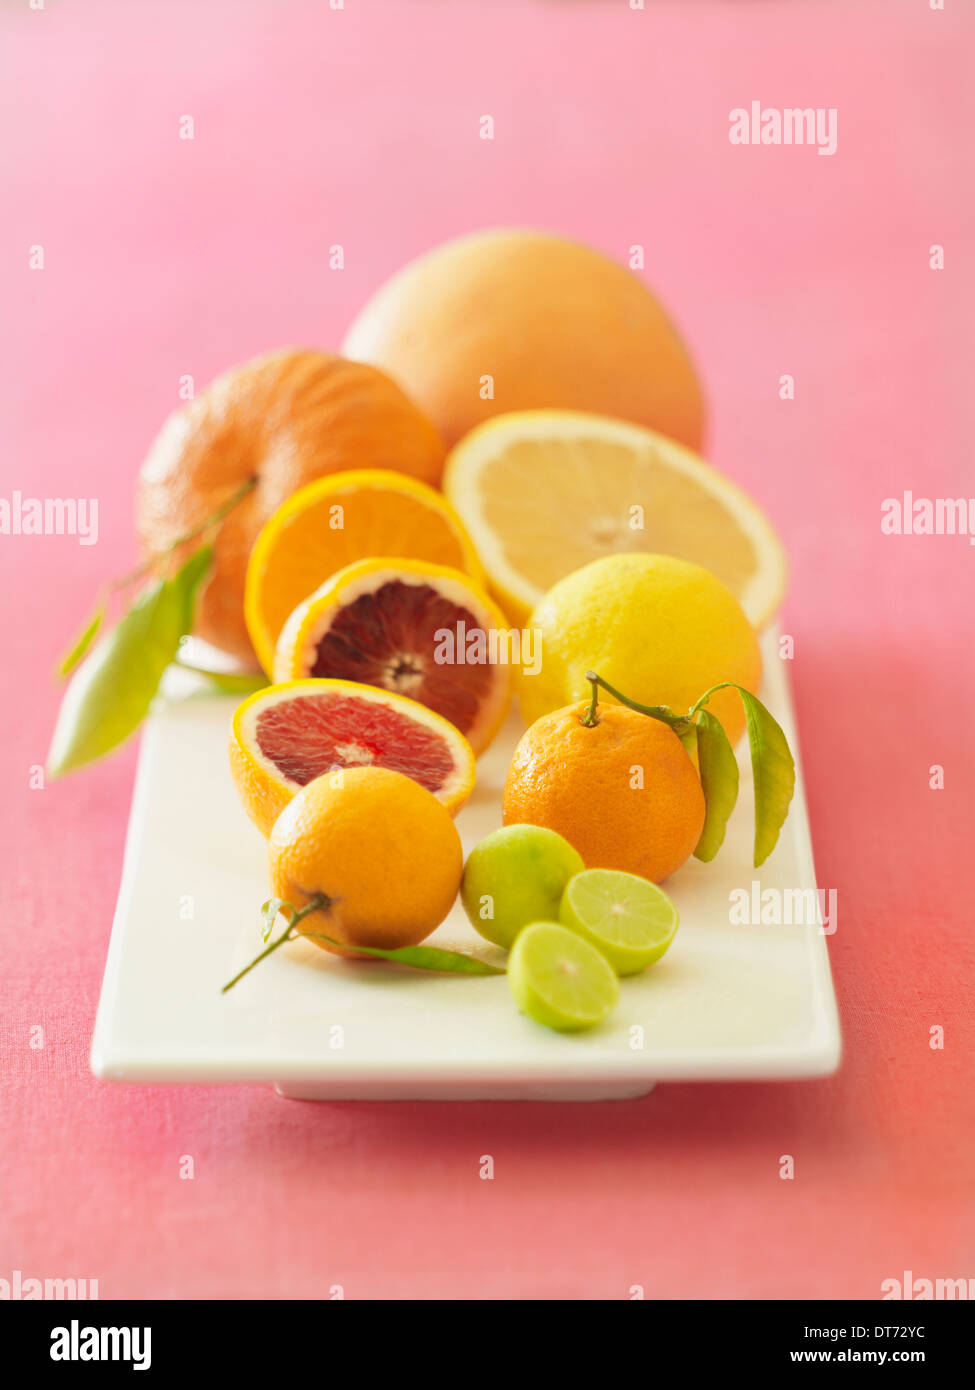 A white platter with oranges, blood oranges, grapefruit, lemon and limes on a pink fabric background. - Stock Image